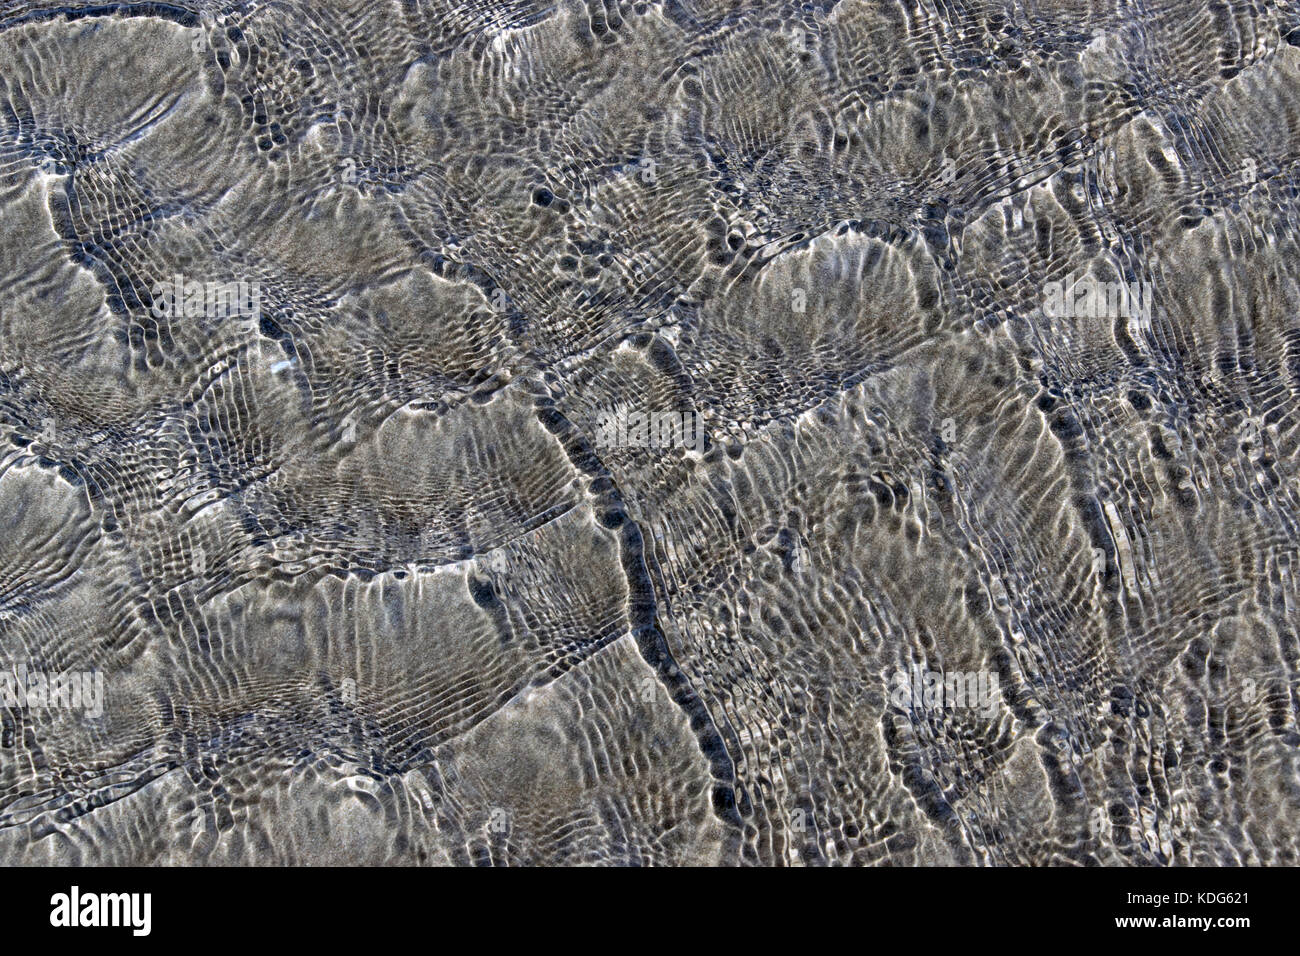 Water rippling across sand - Stock Image